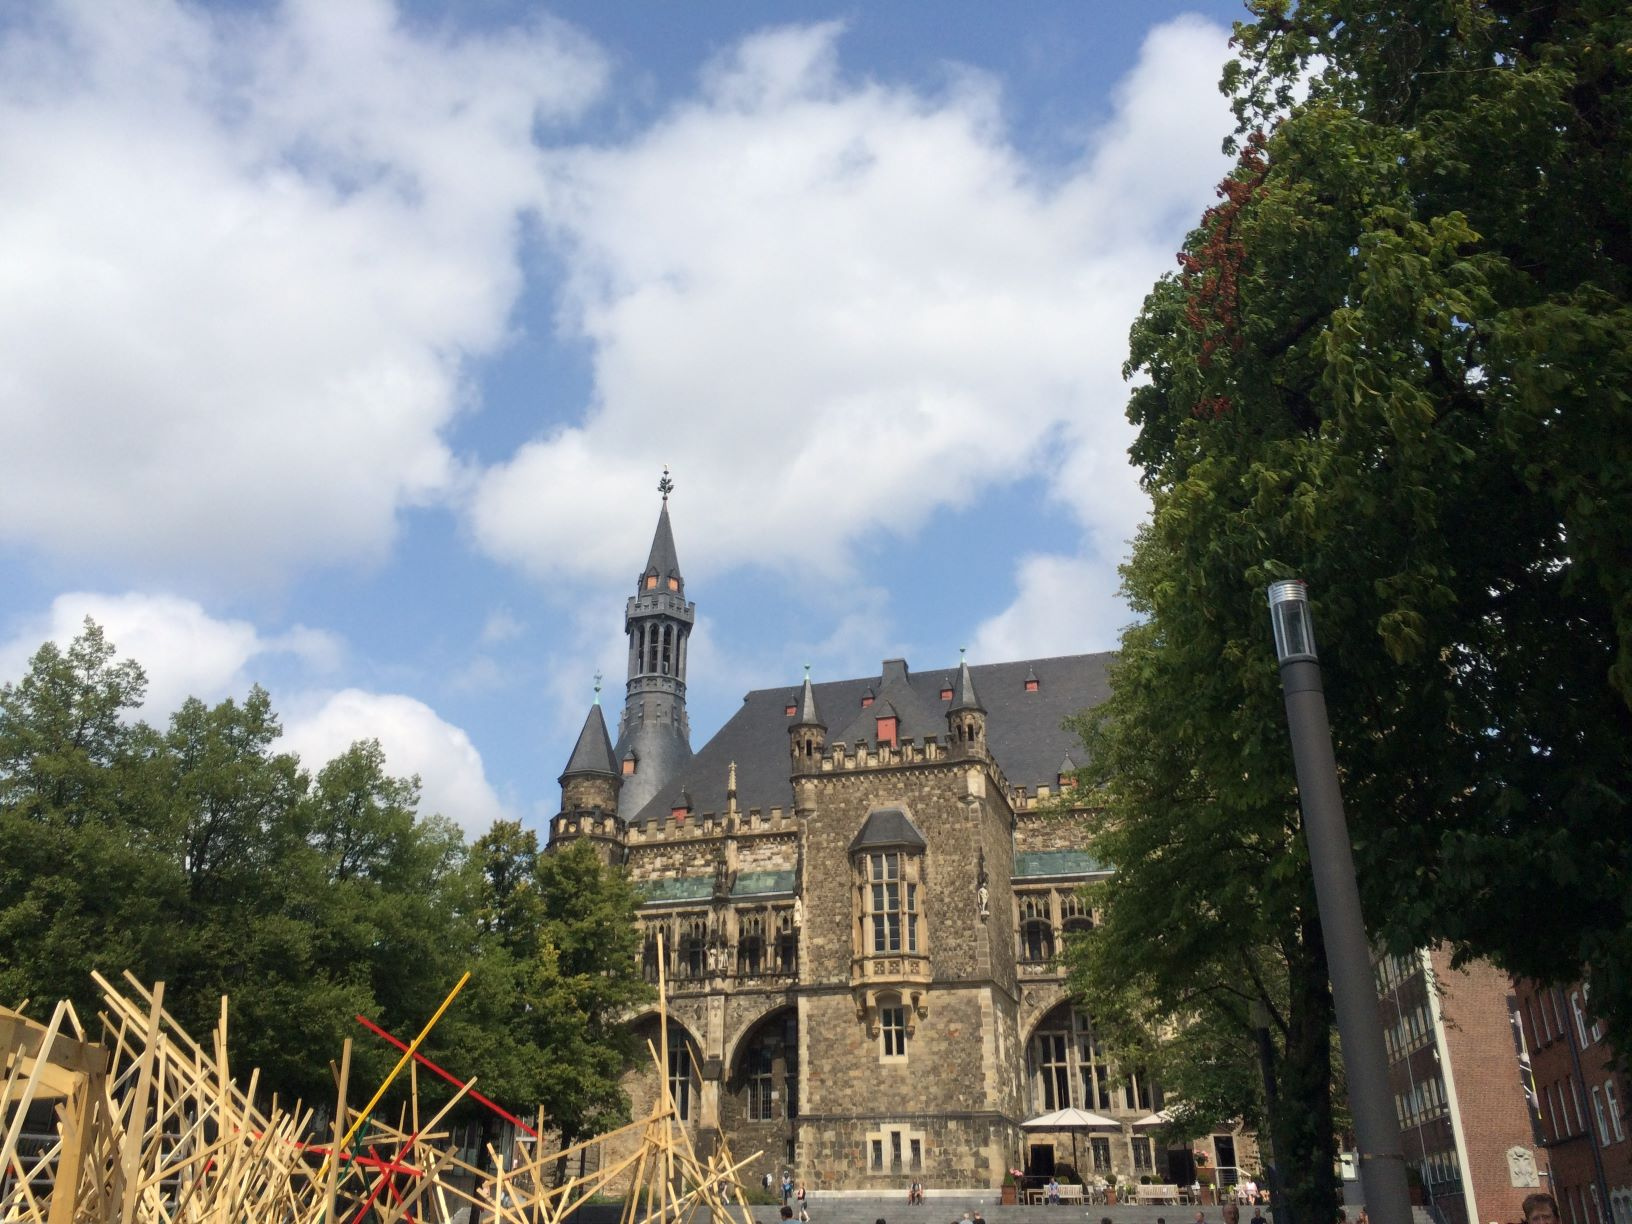 A view of Aachen's Rathaus and some art